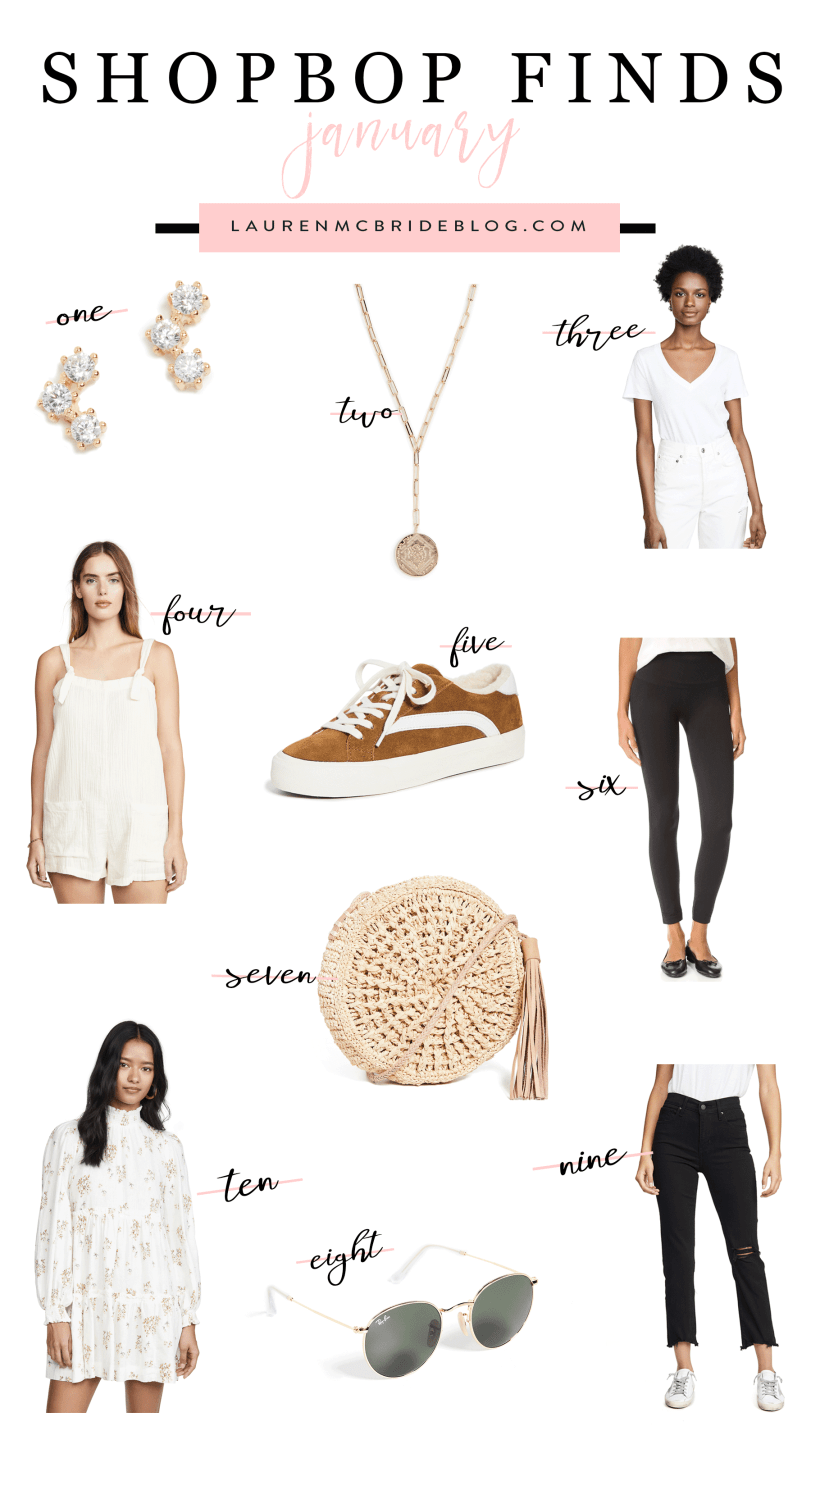 Looking for the best Shopbop Finds this month? Connecticut Lifestyle Blogger Lauren McBride is sharing her top favorite Shopbop finds this month. Click to see them HERE!